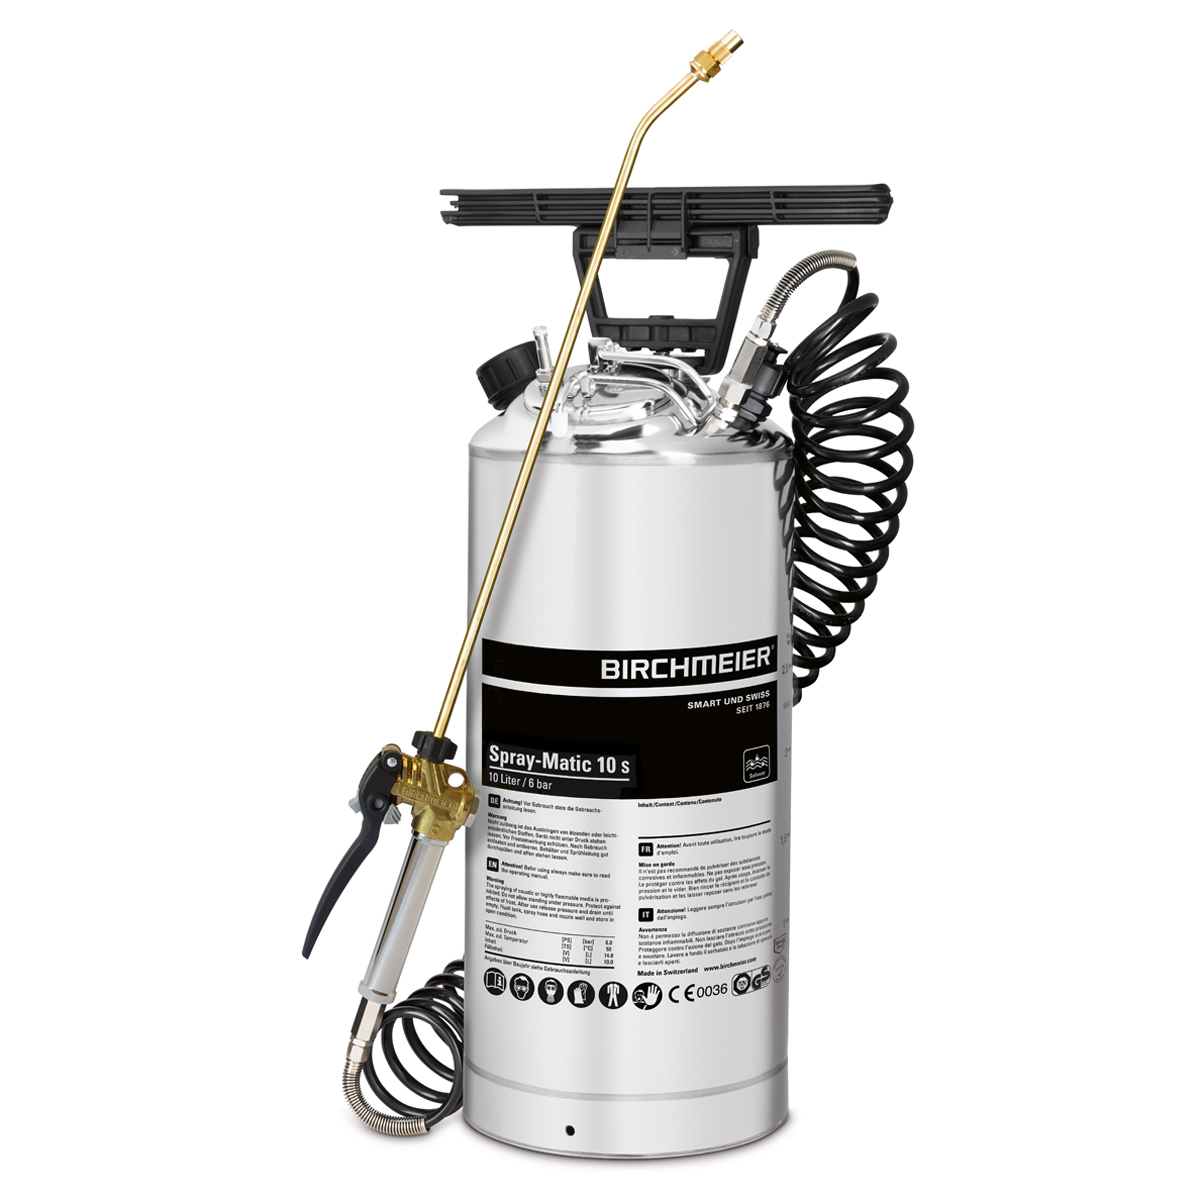 Spray-Matic 10 S avec raccord à air comprimé